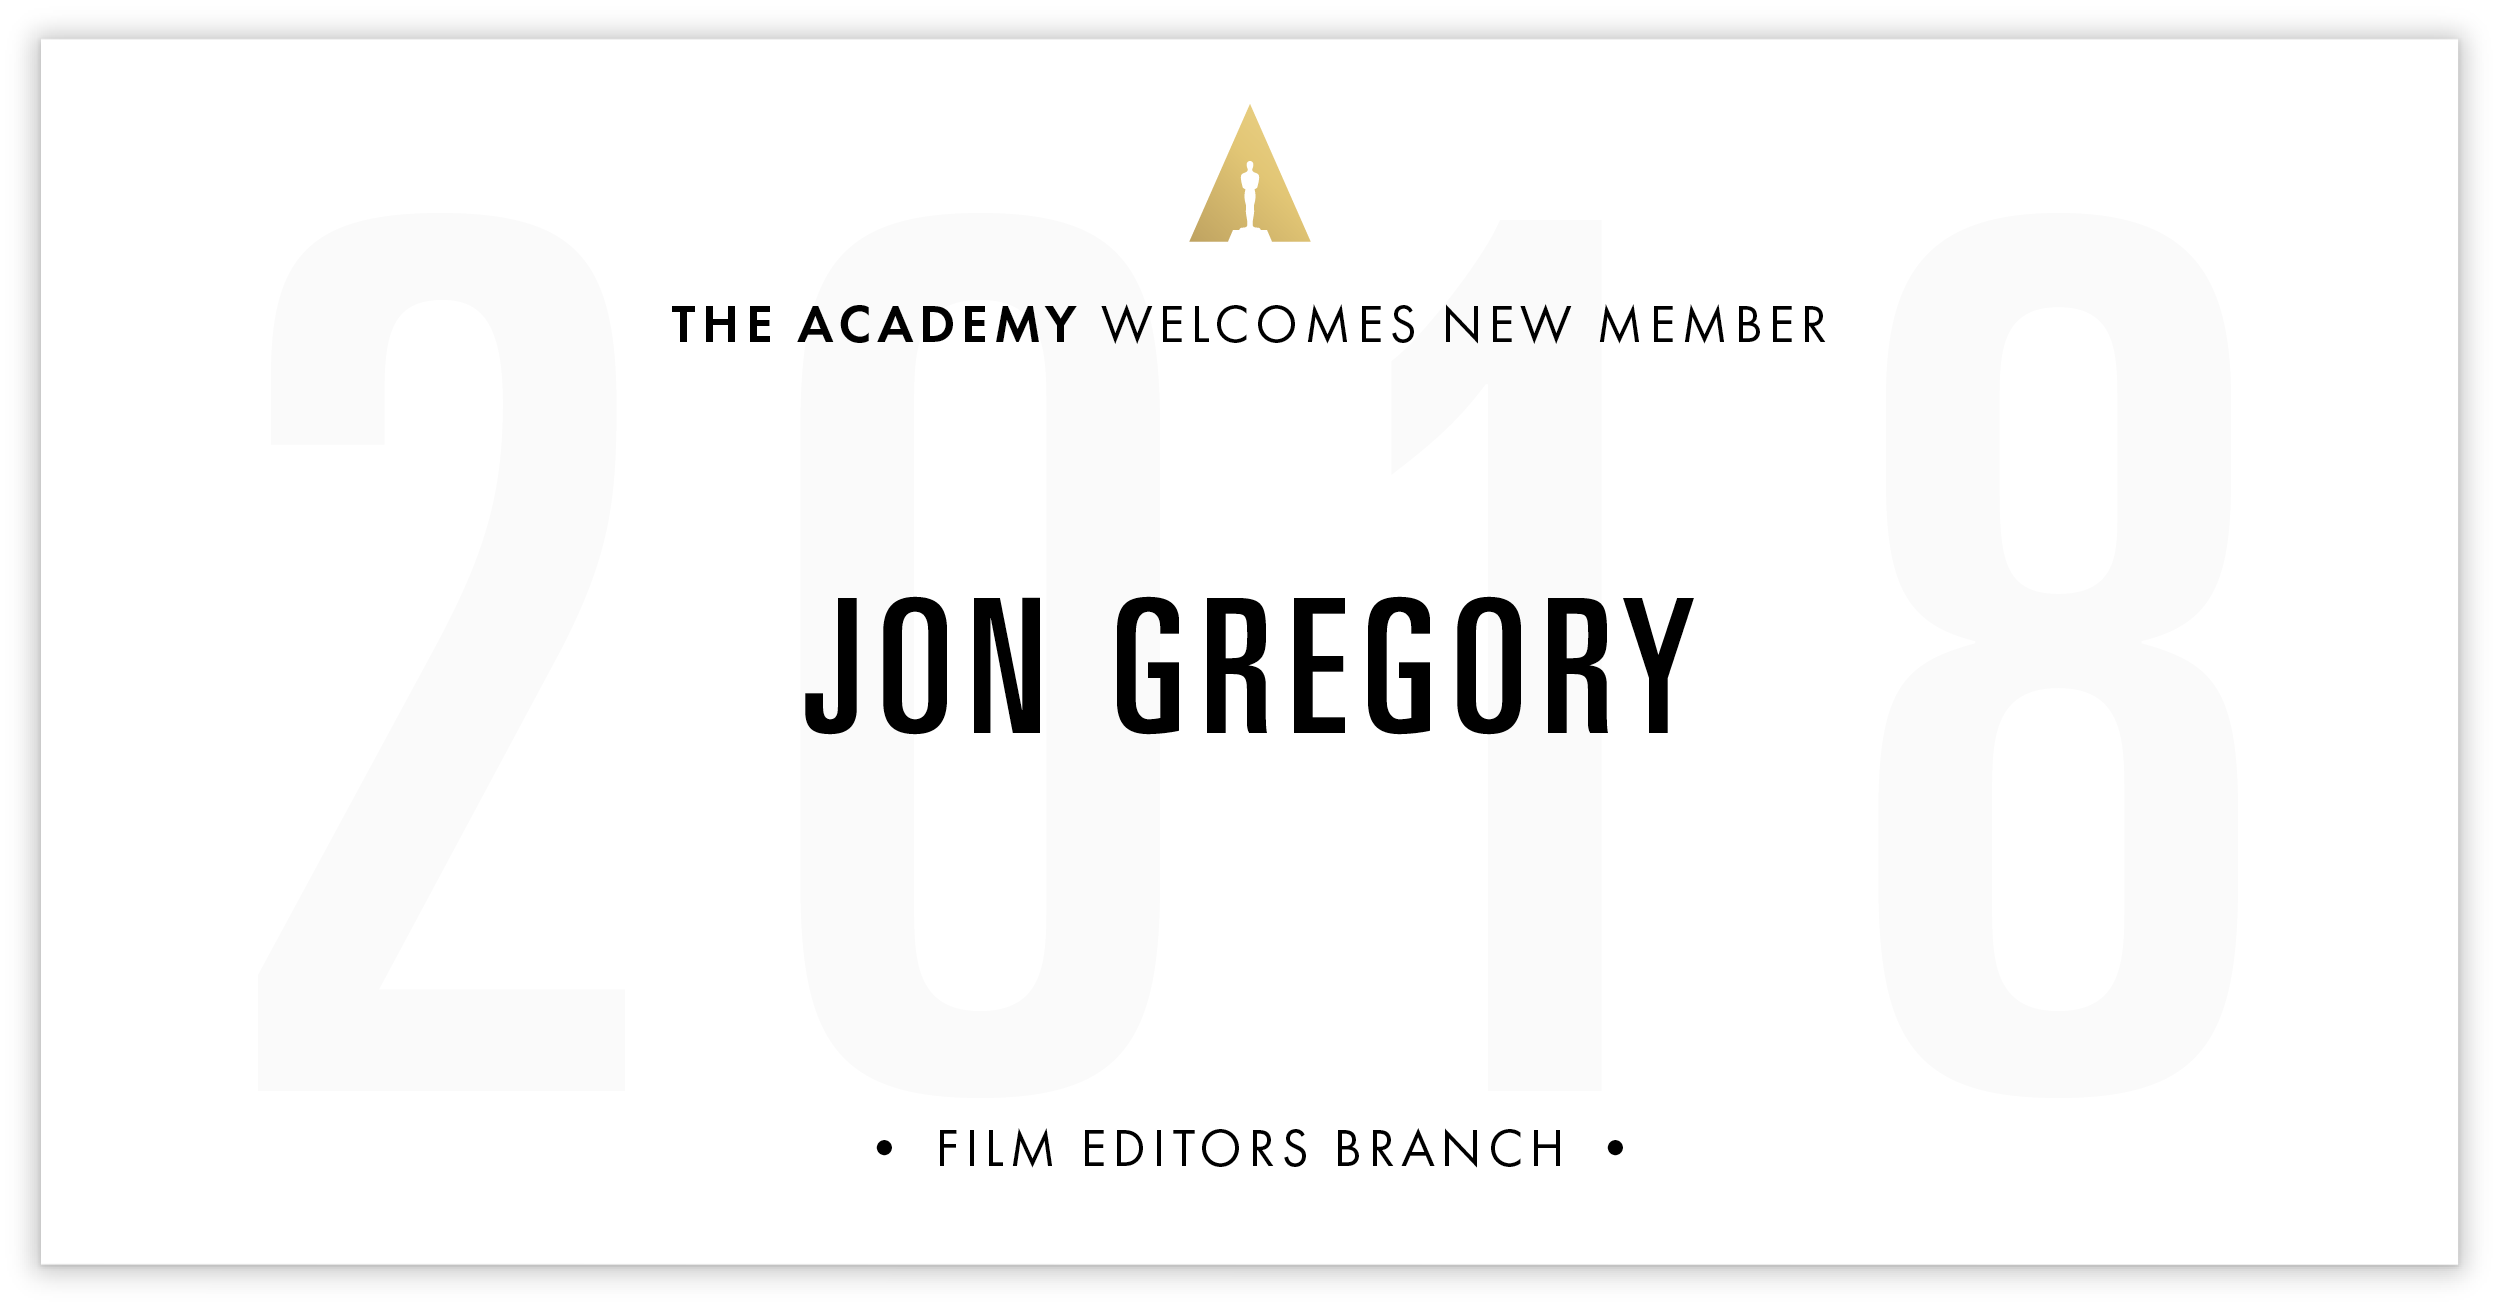 Jon Gregory is invited!